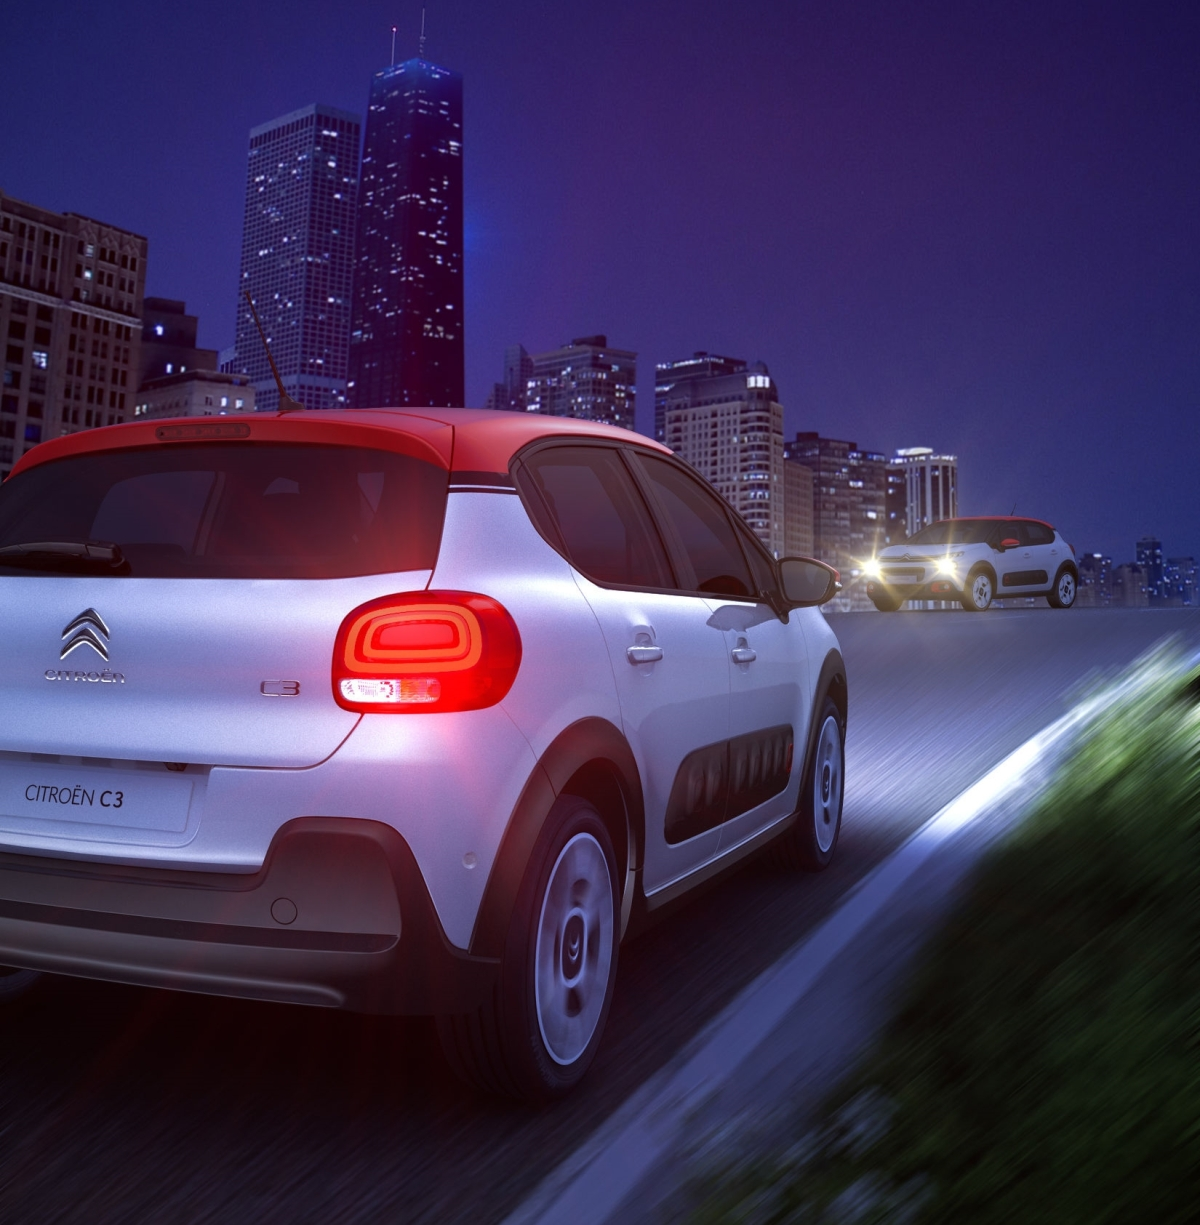 Citroën relaunches with quirky range